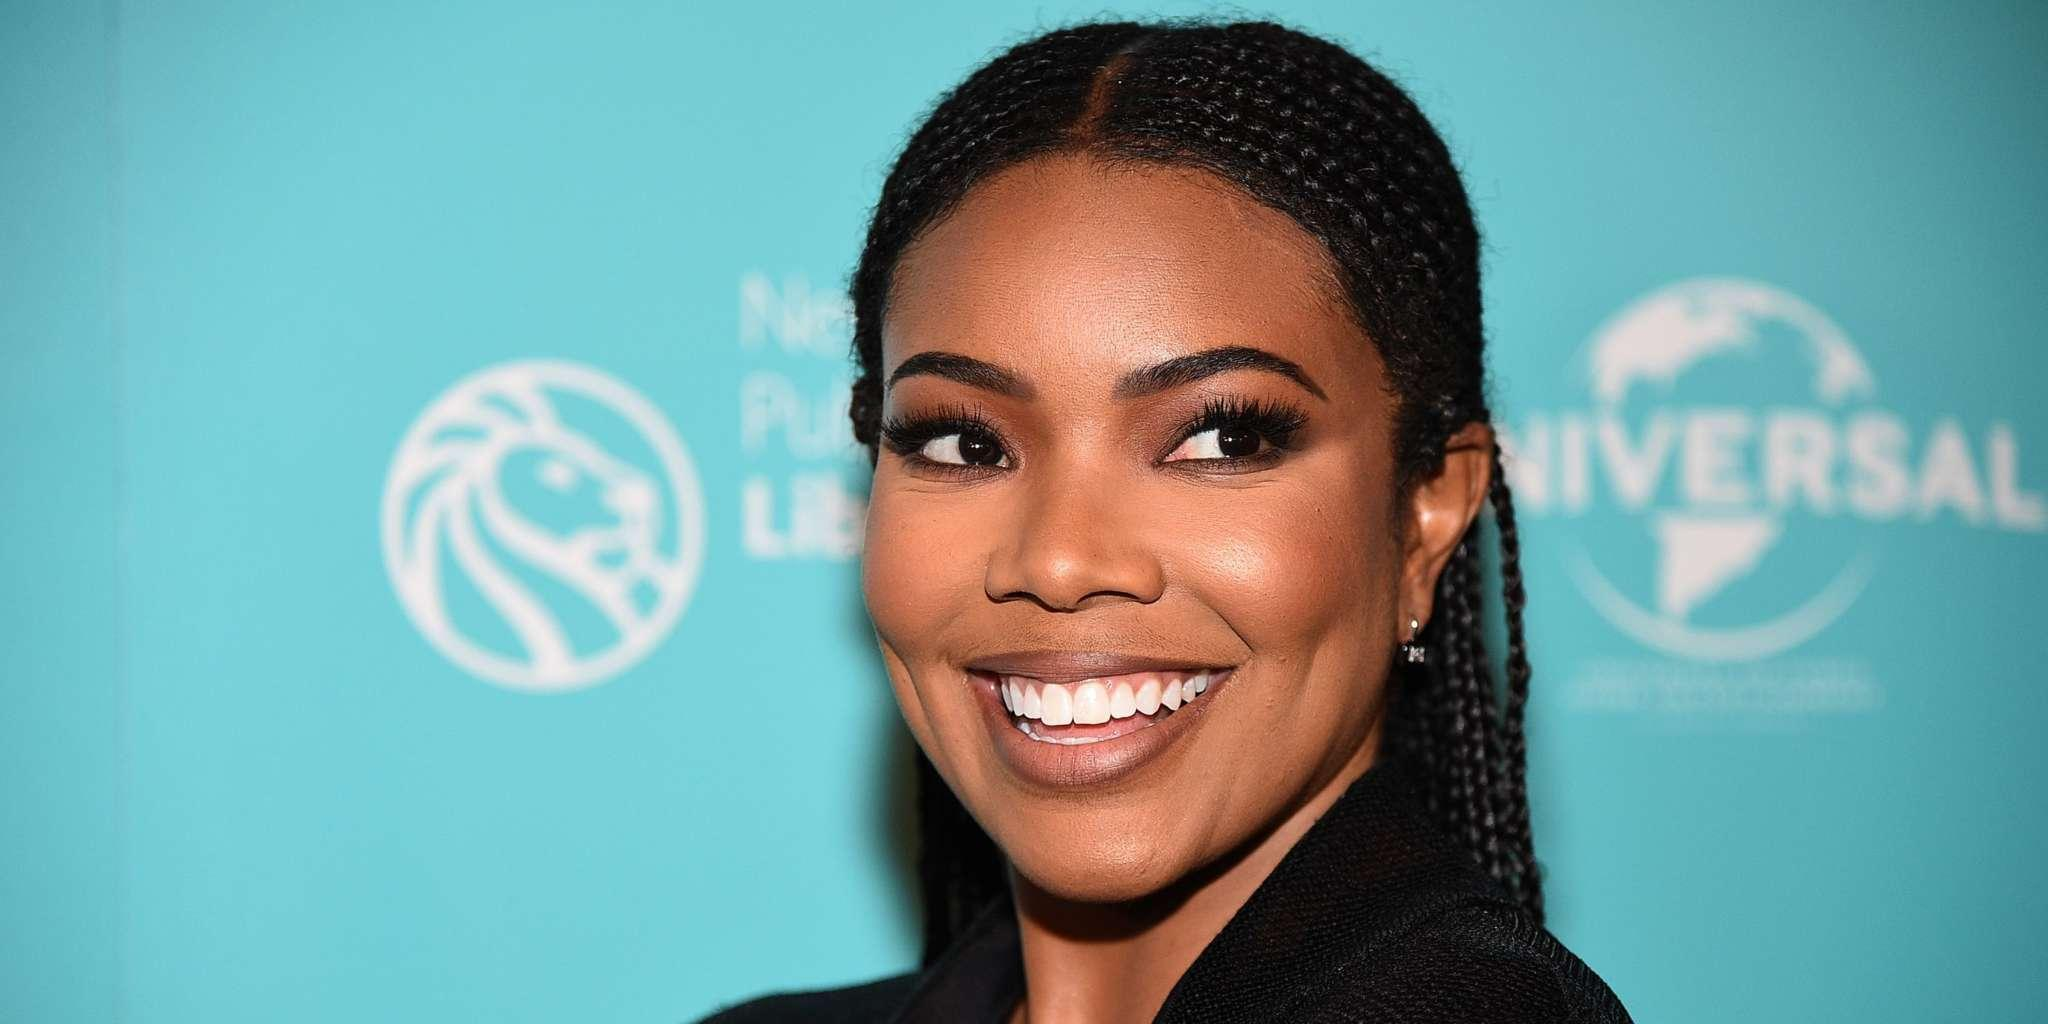 Gabrielle Union And Baby Kaavia's Latest Photo Shoot Makes Fans Laugh Their Hearts Out